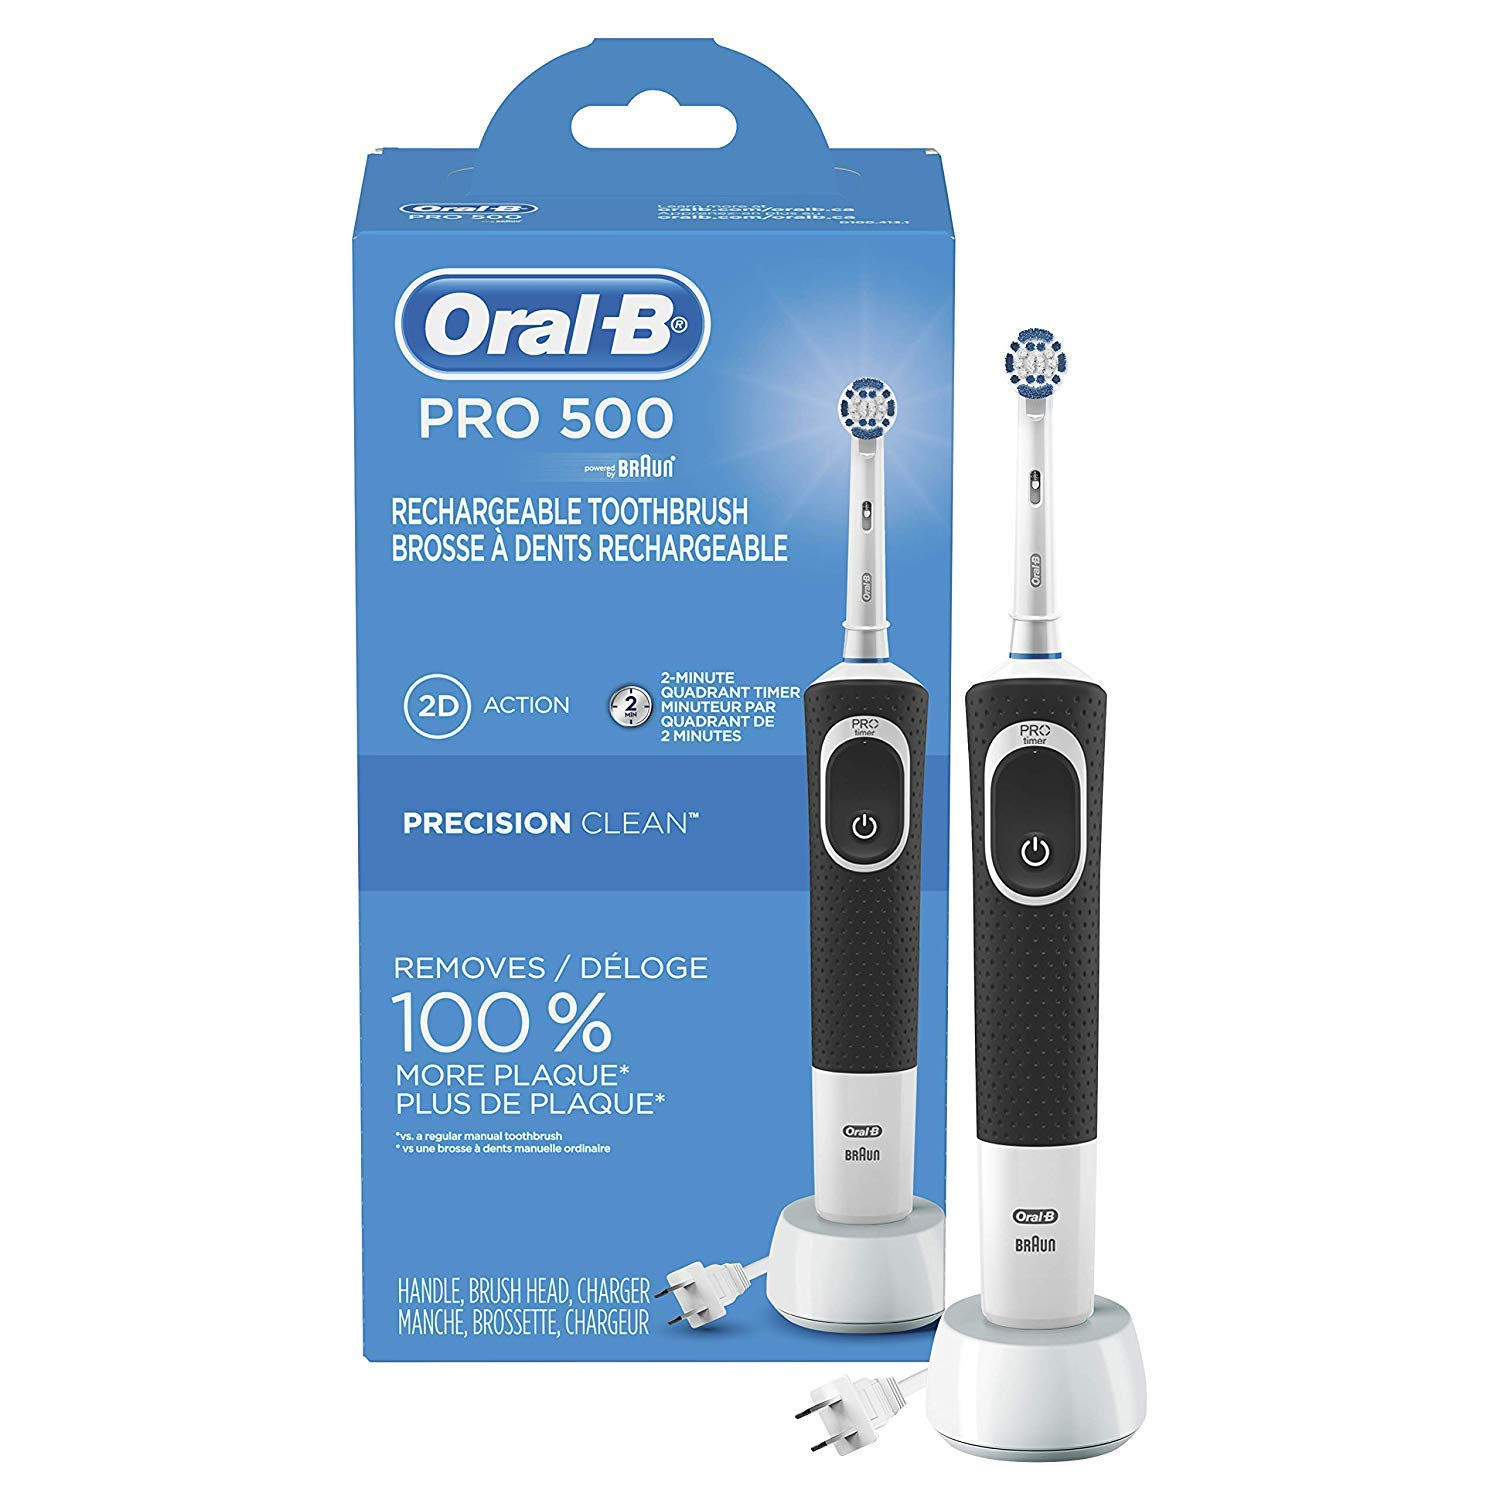 Oral B Rechargeable Toothbrush Automatic Precision